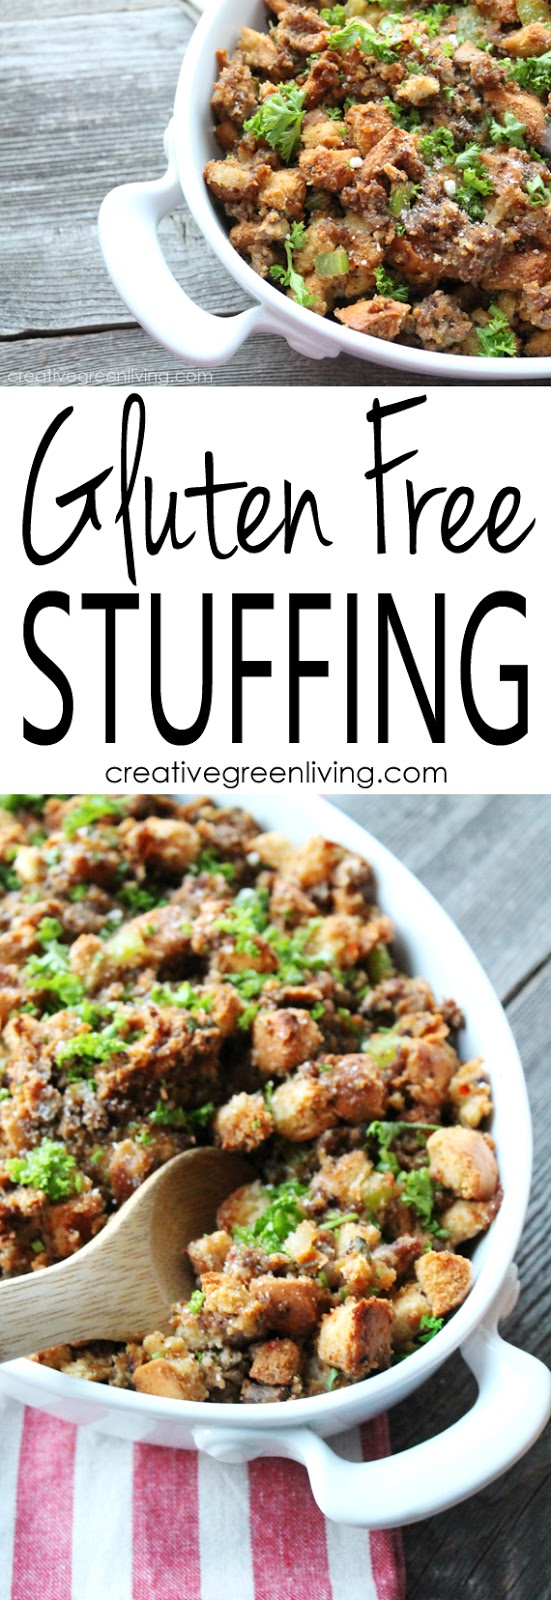 The very best gluten free stuffing recipe creative green living created using the recipes generator forumfinder Images